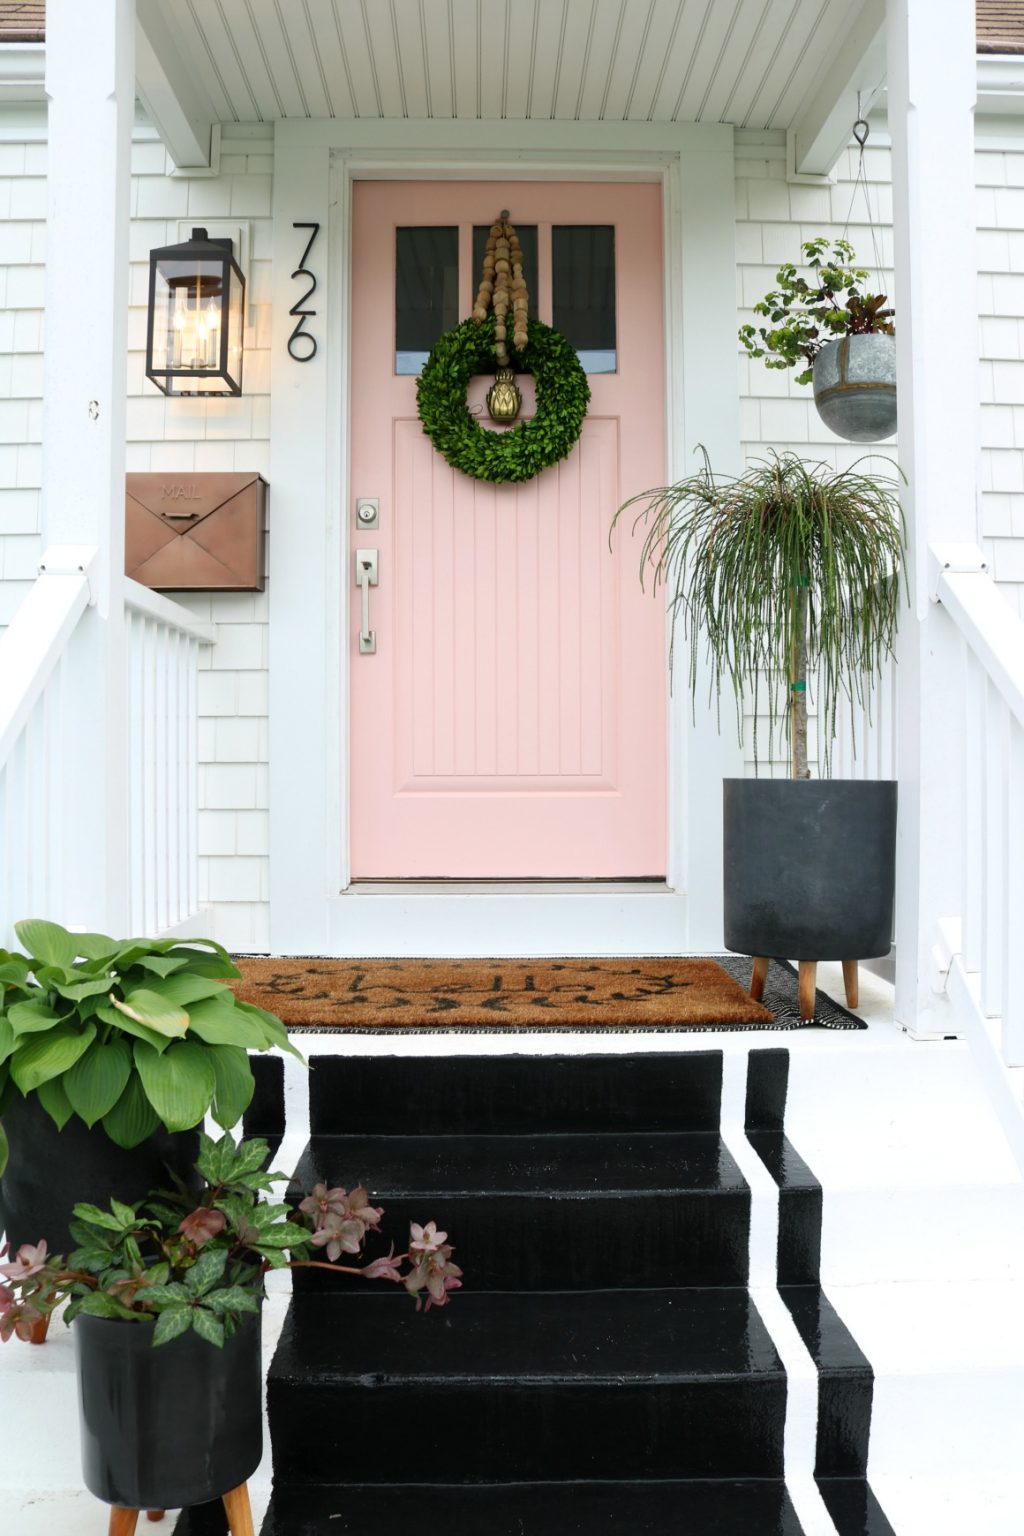 20 Spring DIY Decor Projects For Your Home